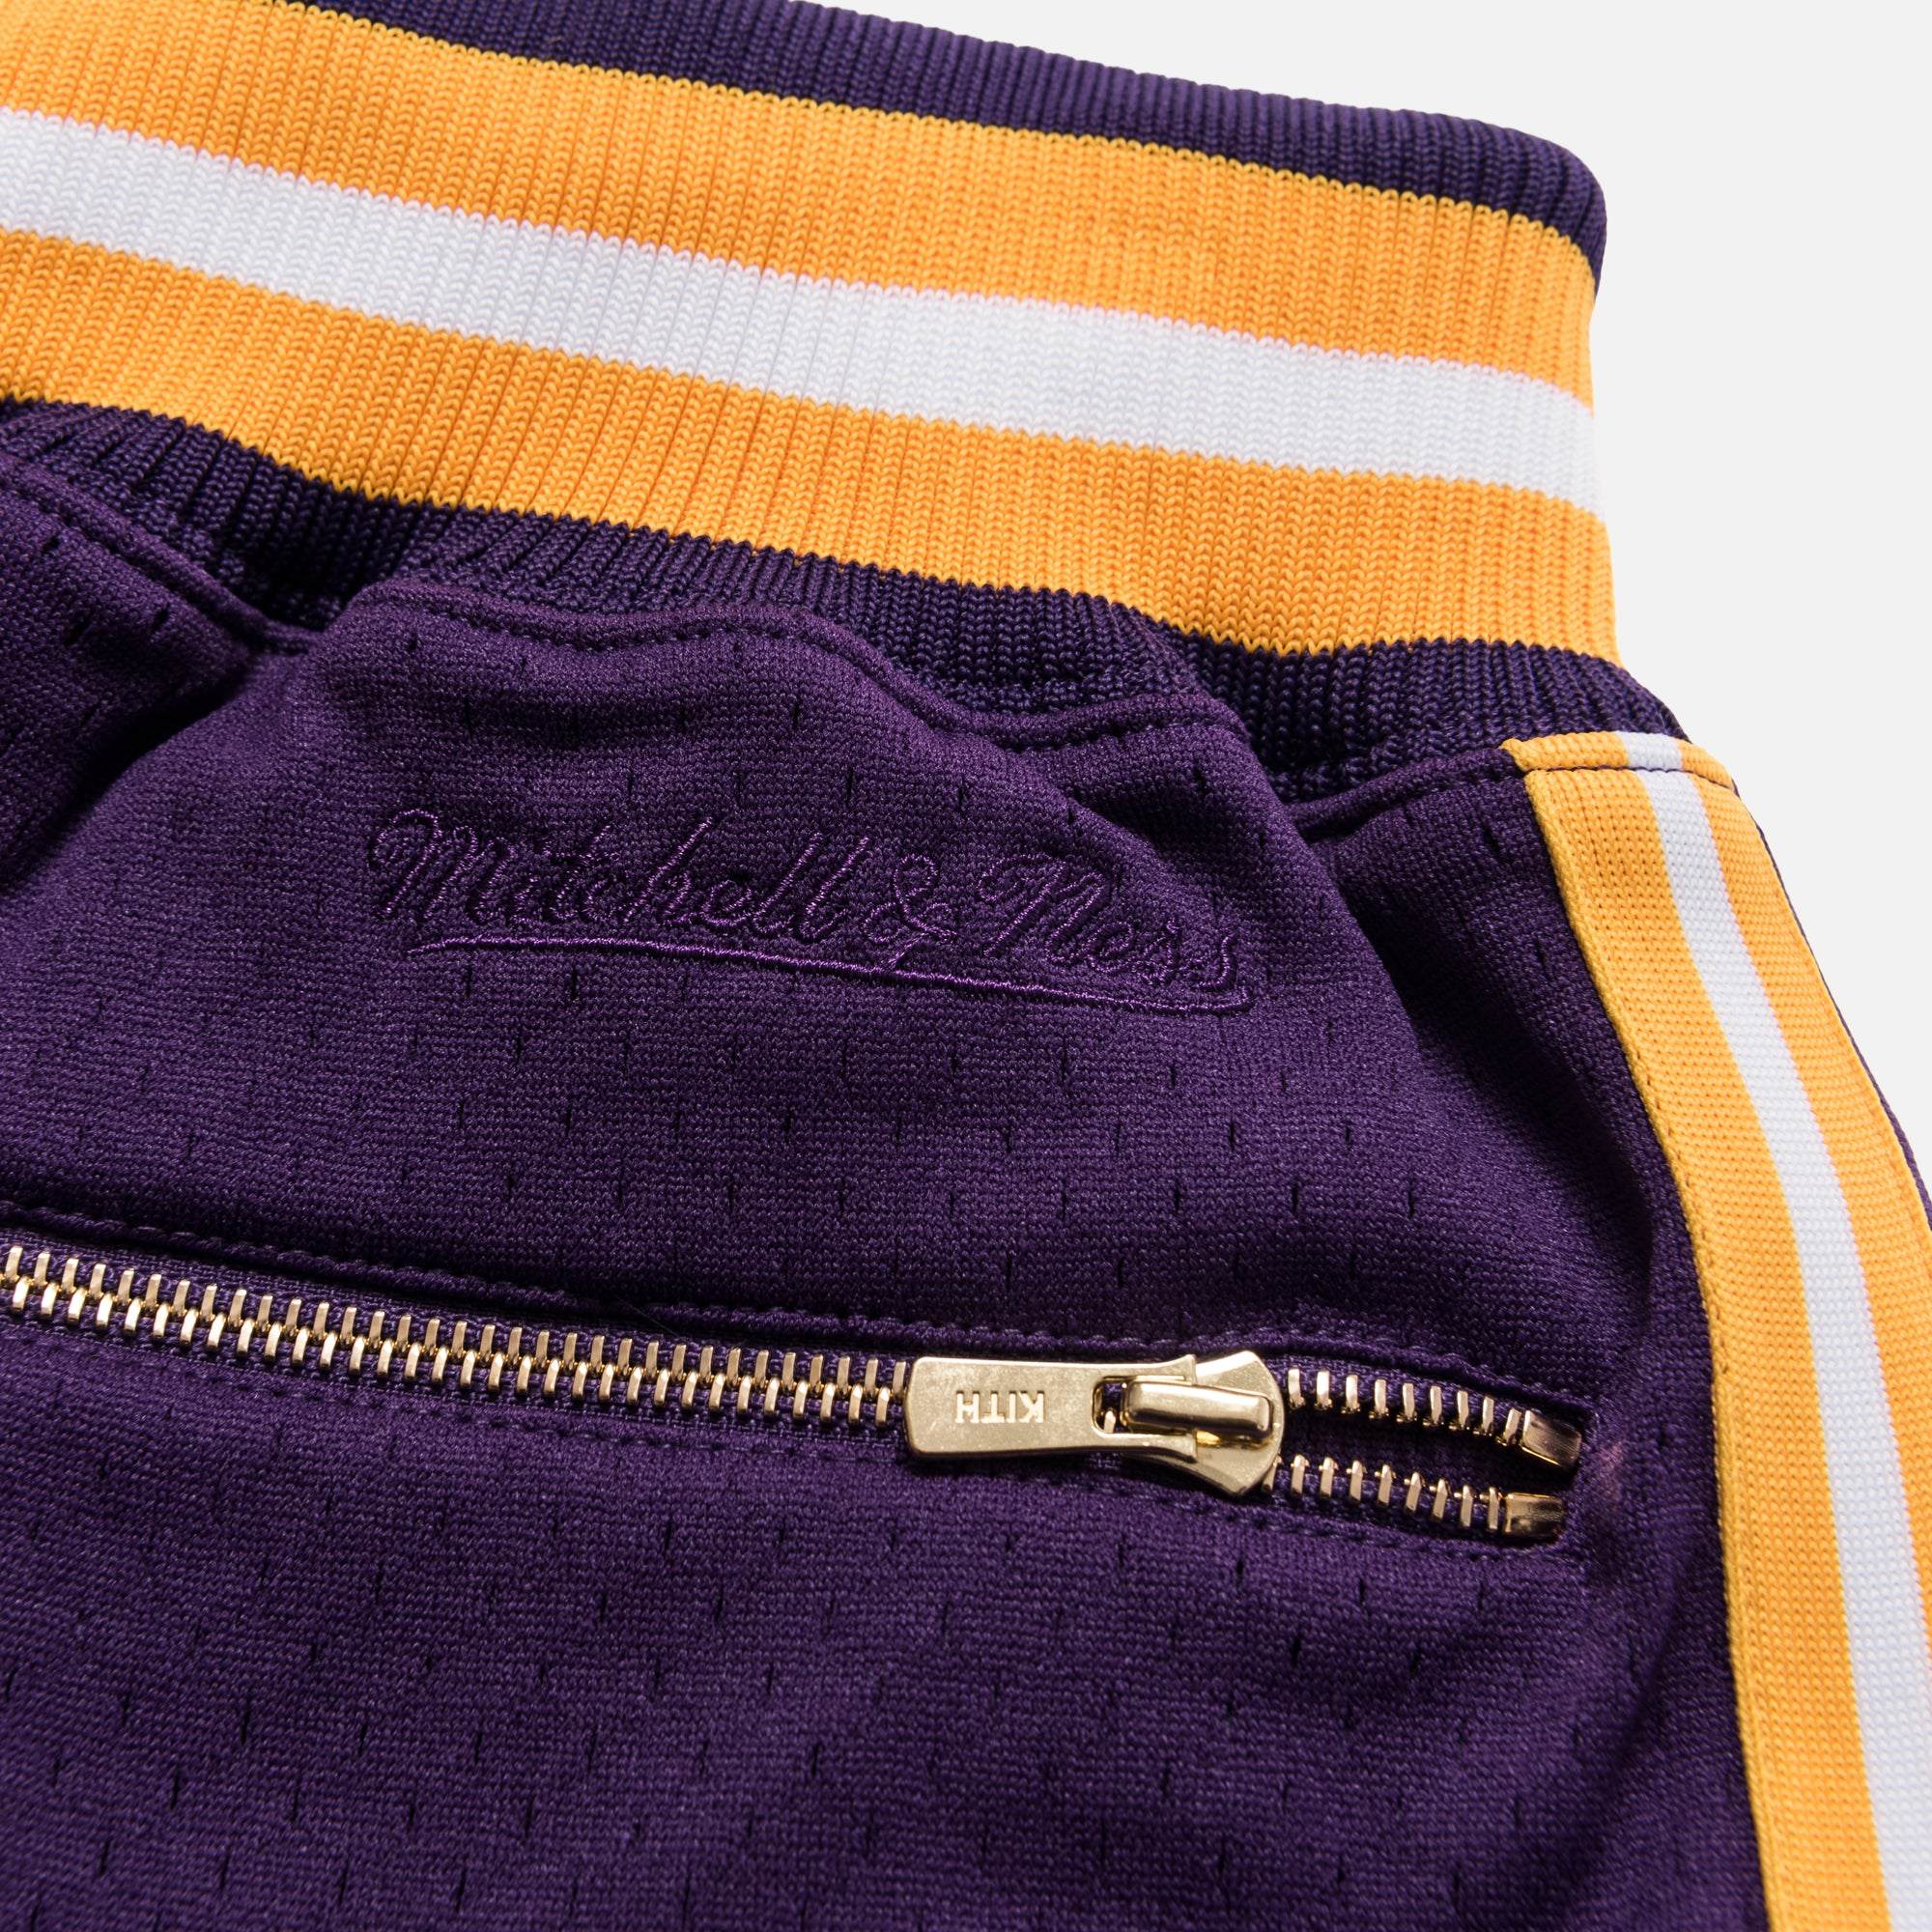 Kith x Mitchell & Ness Basketball Short - Los Angeles